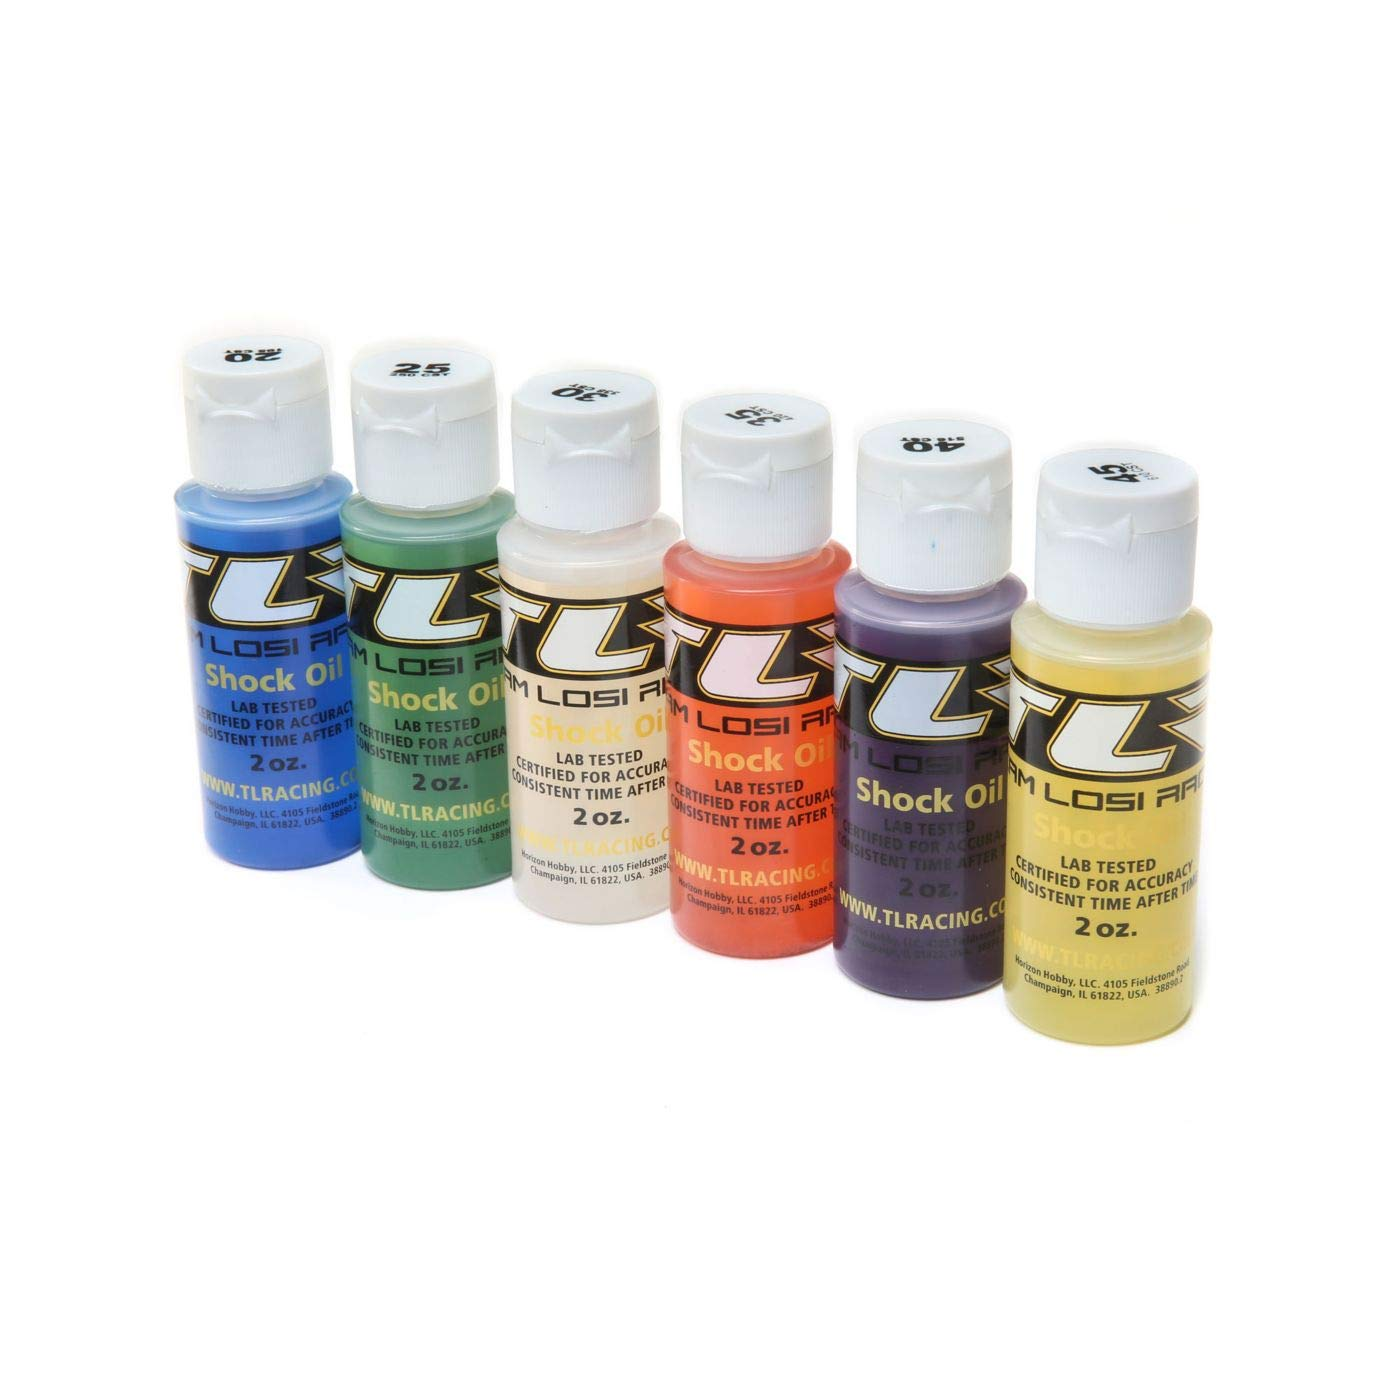 Team Losi Racing Shock Oil, 6Pk, 20, 25, 30, 35, 40, 45, 2oz, TLR74020 by Team Losi Racing